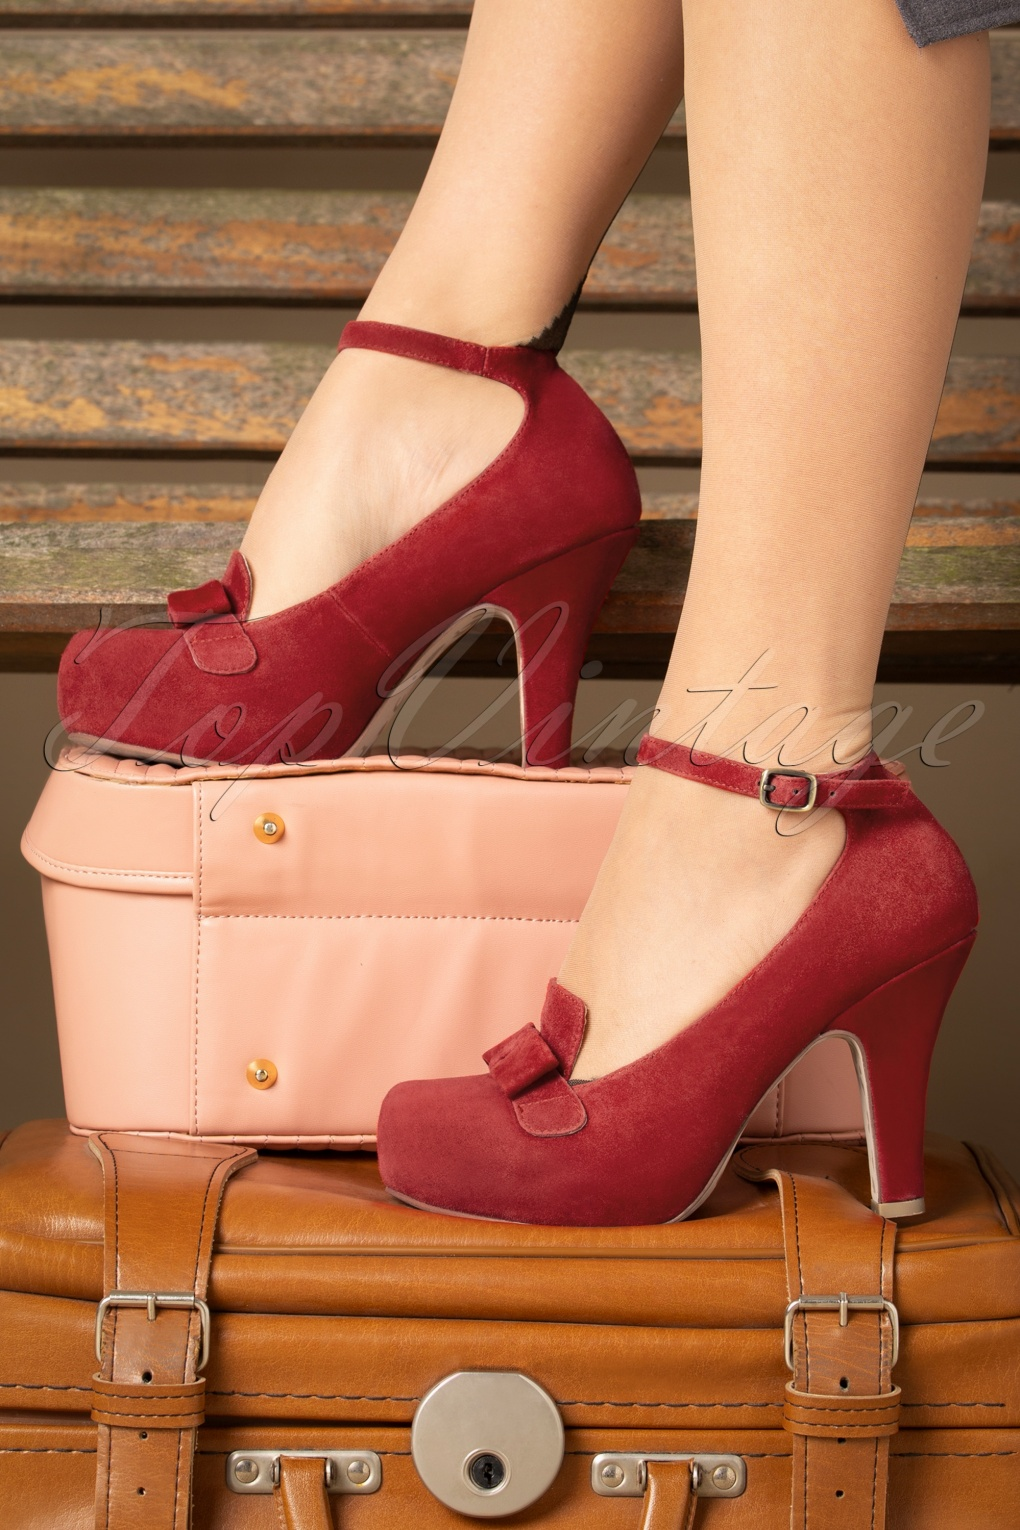 Vintage Heels, Retro Heels, Pumps, Shoes 40s Angie On Adventure Pumps in Warm Red £107.32 AT vintagedancer.com